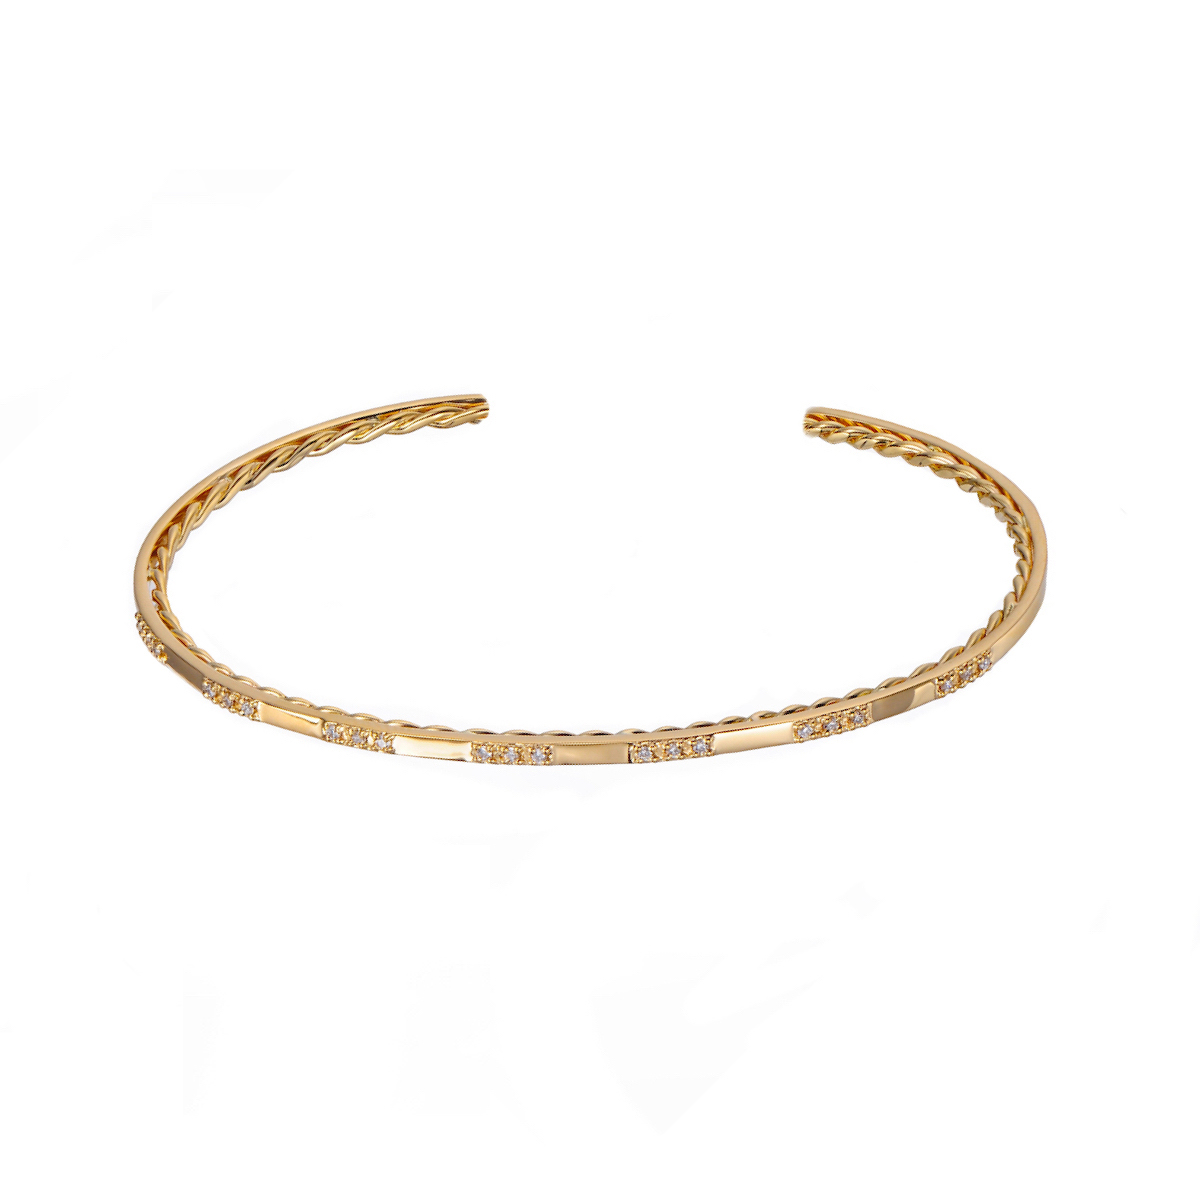 99-1:8-Slim-Twist-Lined-Pavé-Diamond-Trio-Patterned-Open-Gold-Cuff-C_ALGCF-02